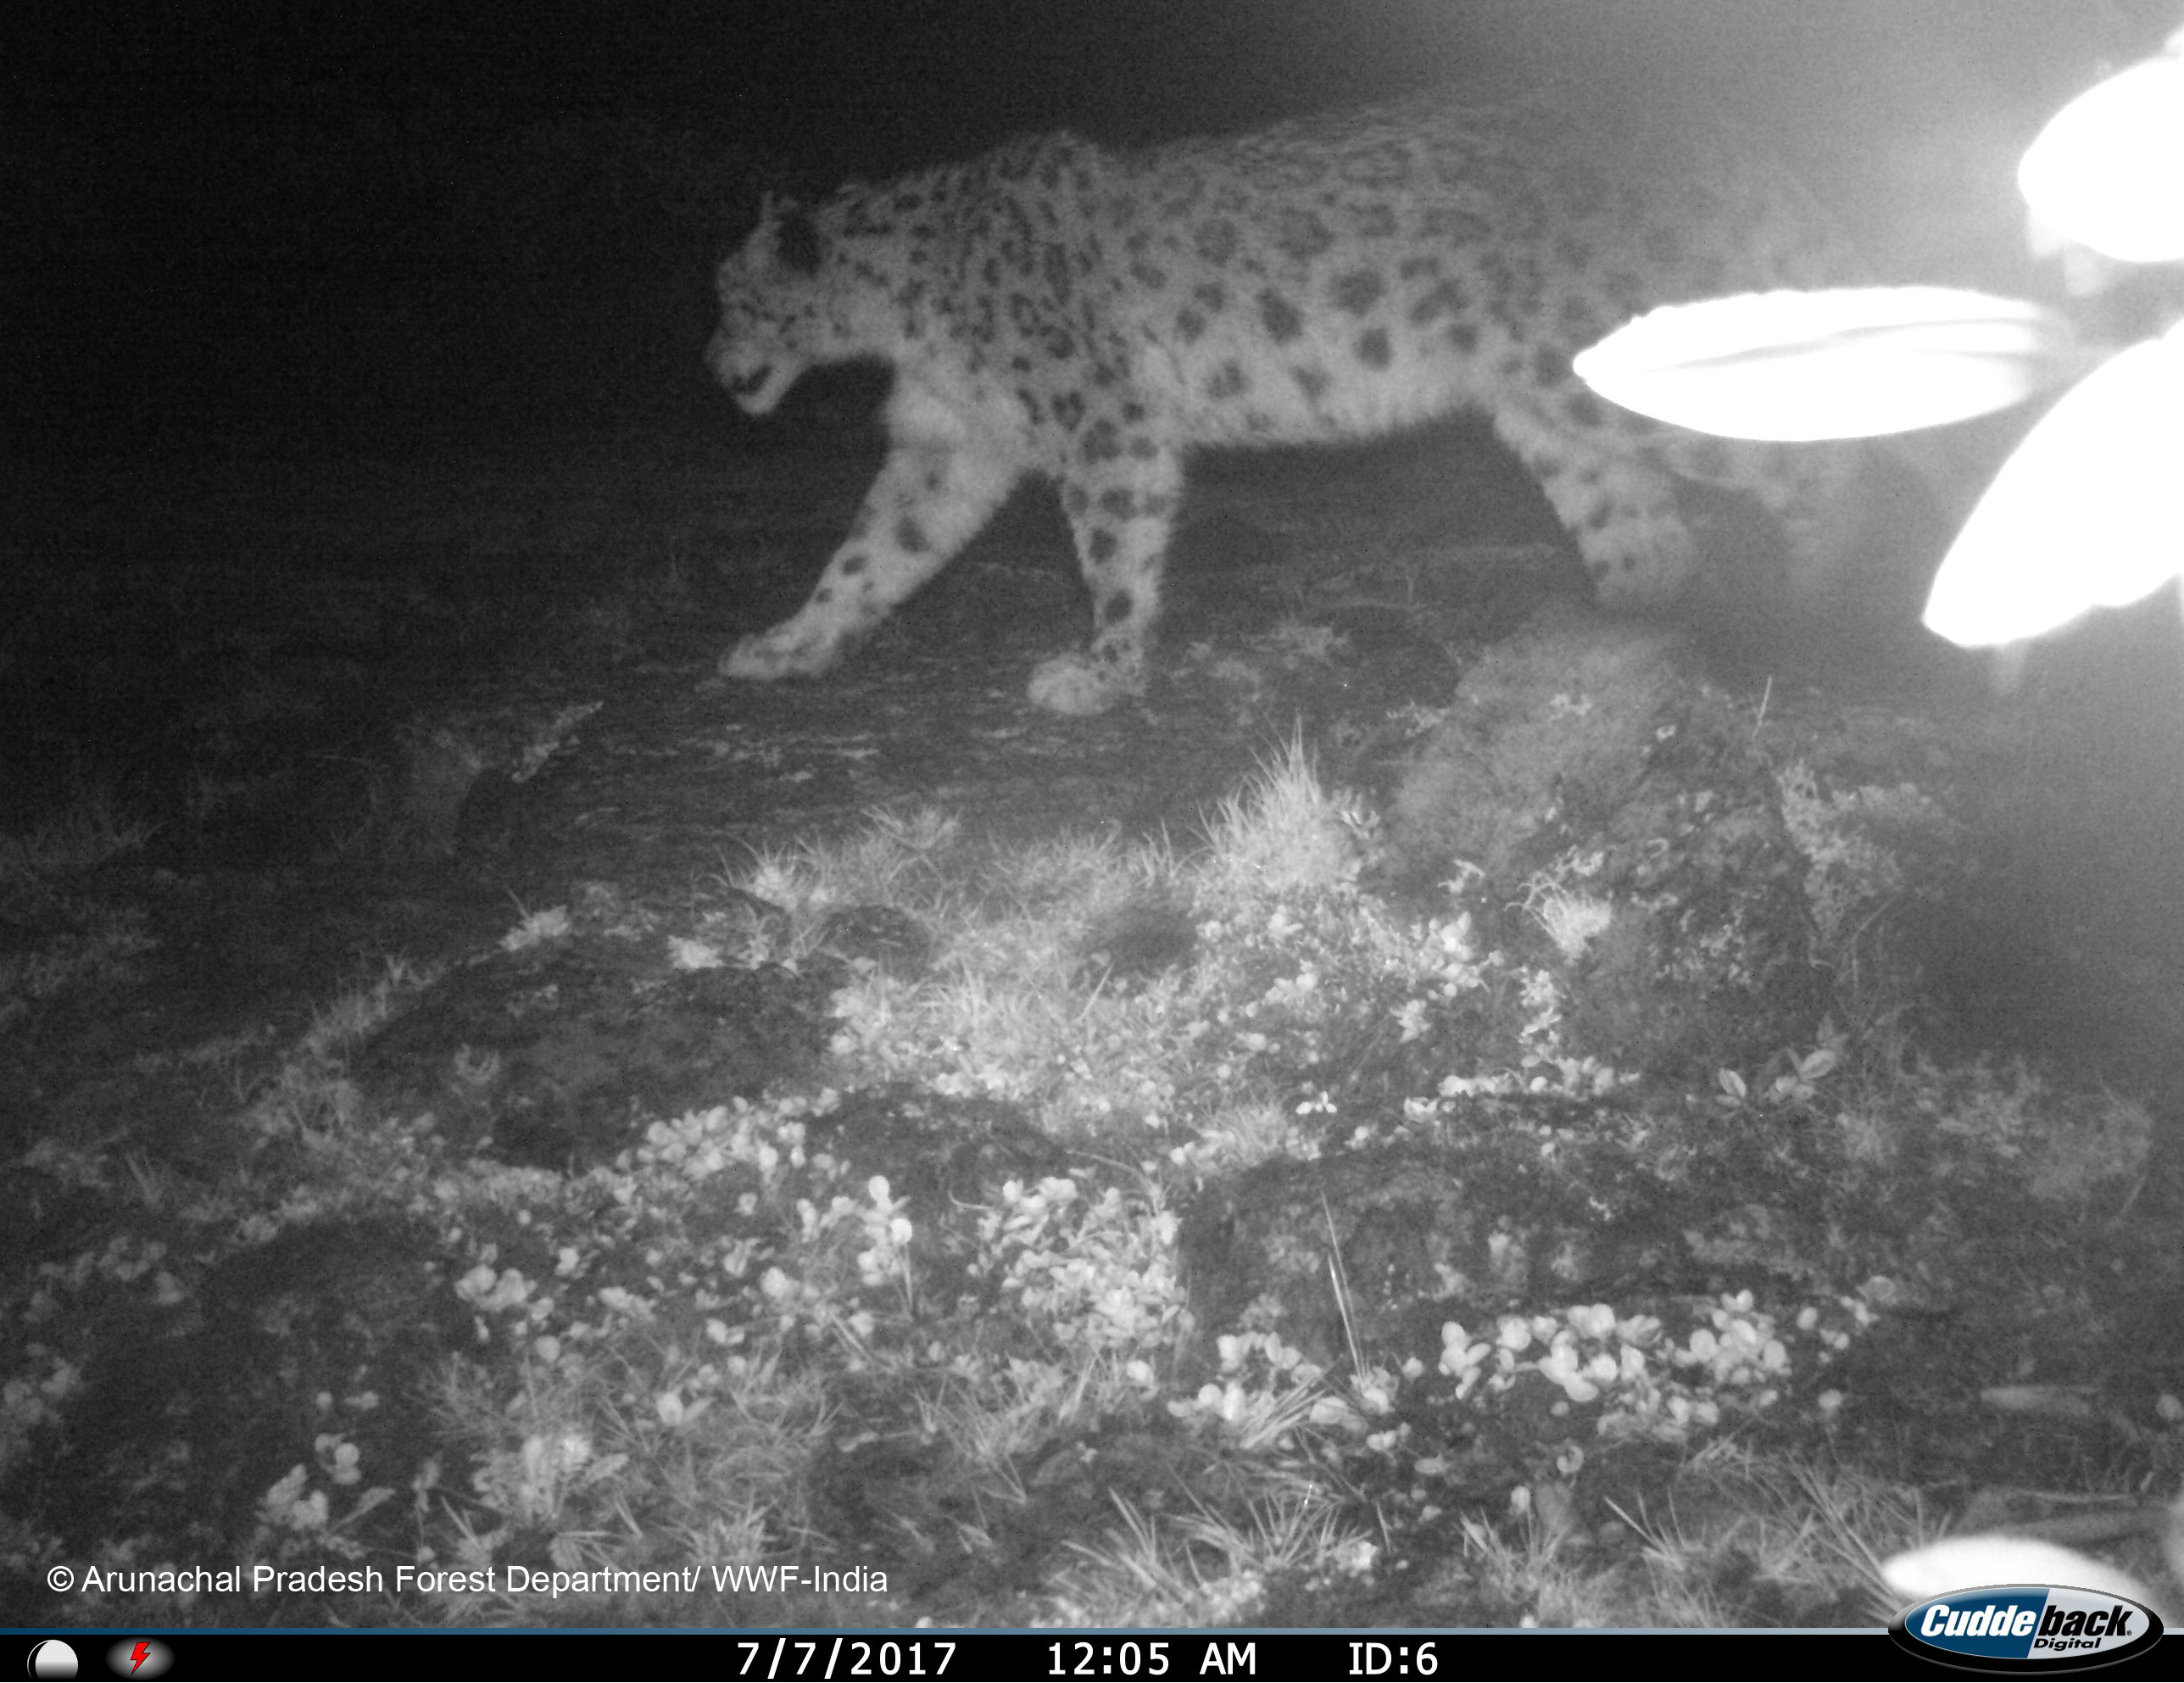 Camera trap image of a snow leopard. (Photo credit: WWF India)